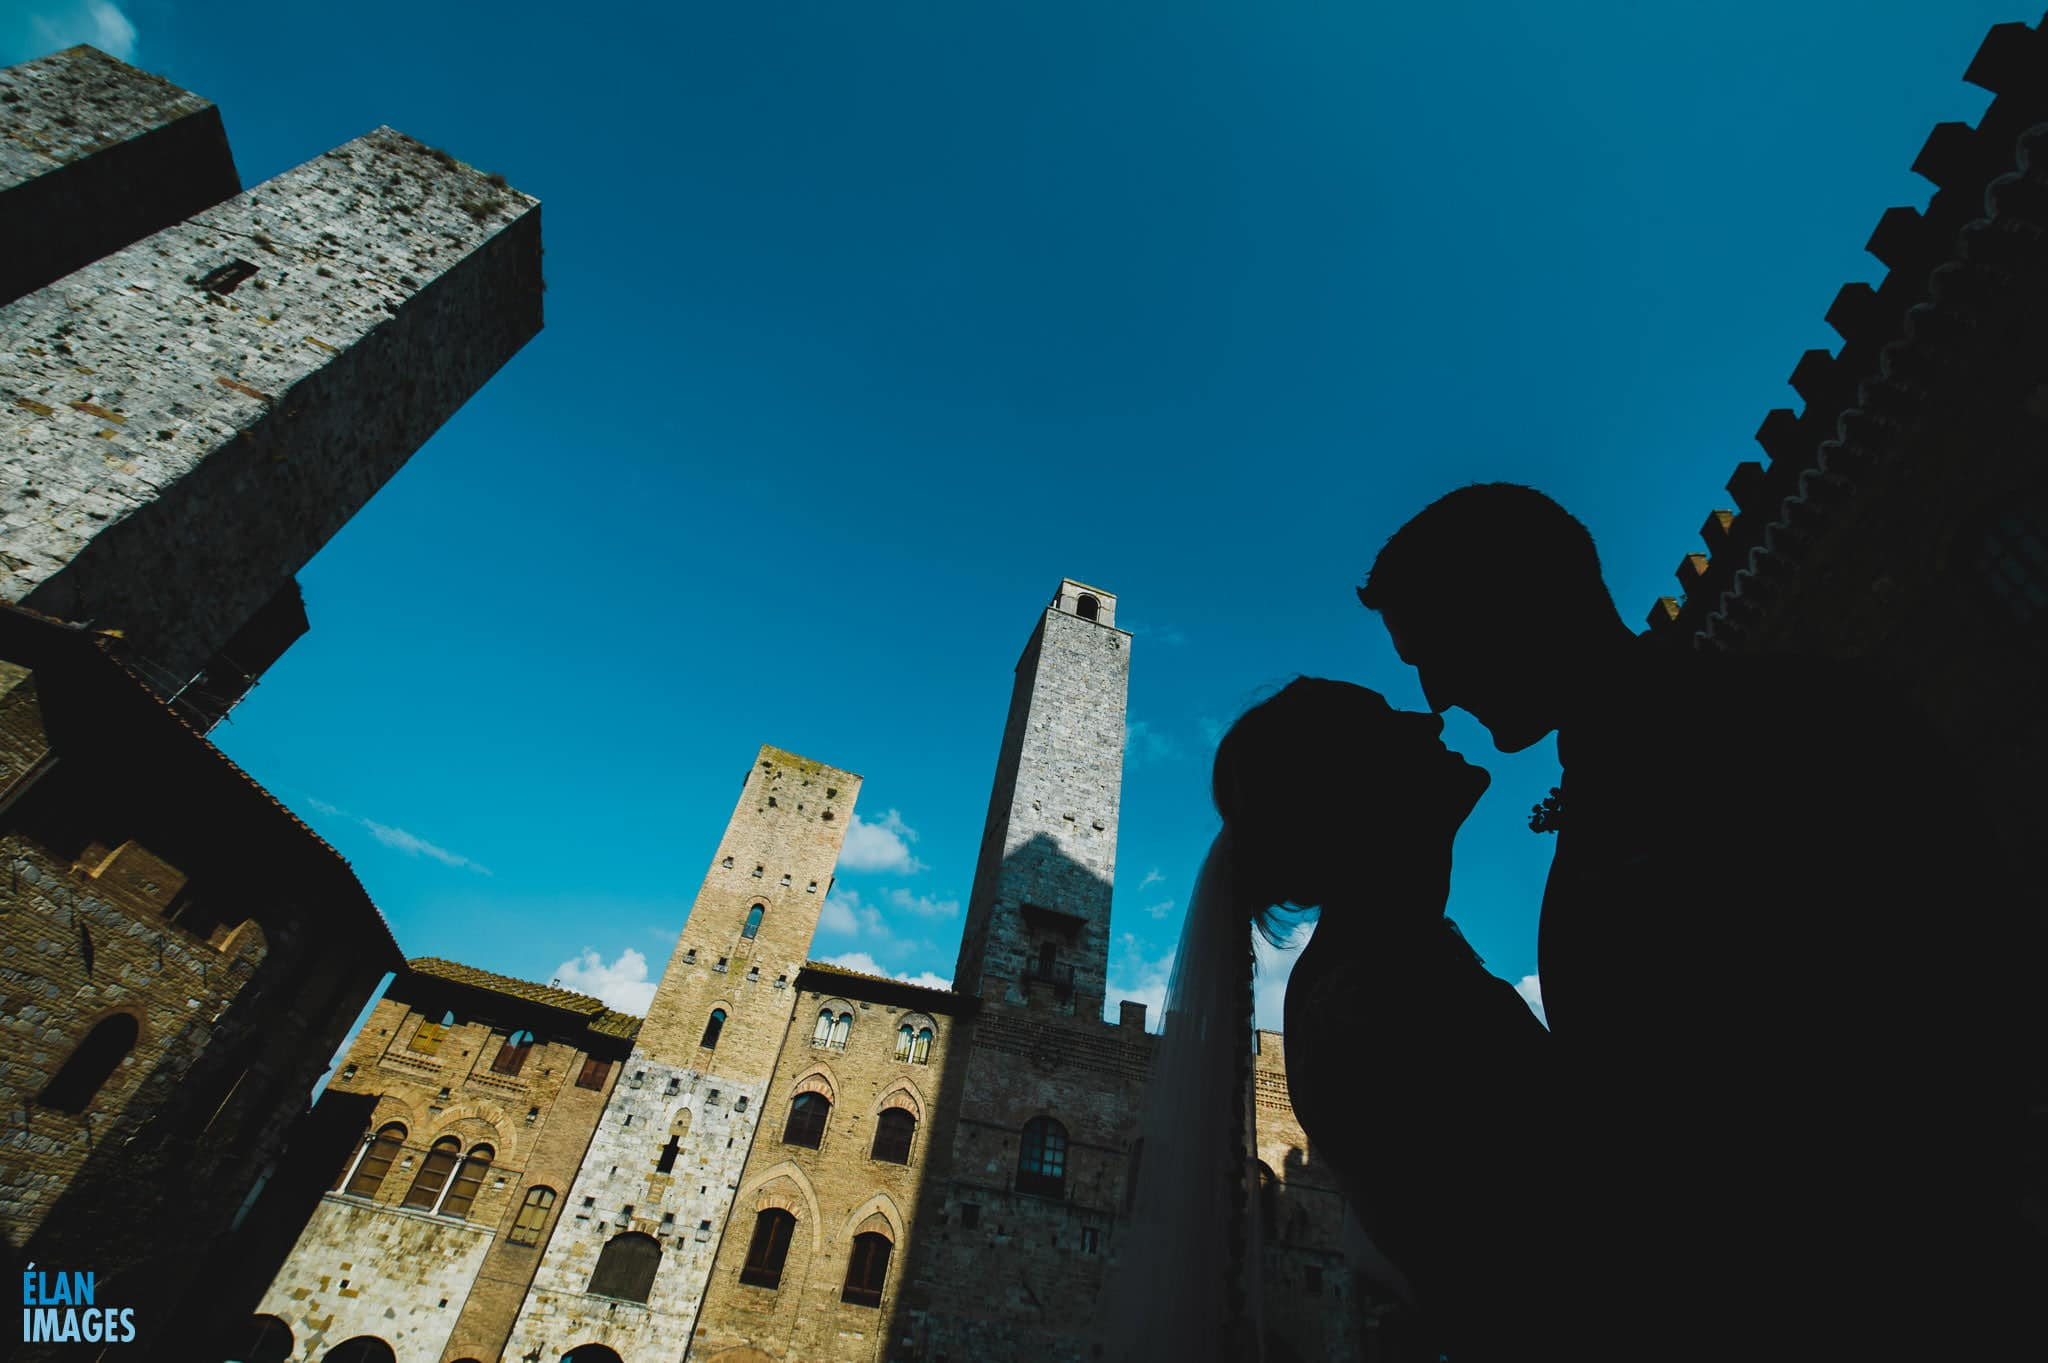 Bride and groom photographed in the midday sun just after their wedding at San Gimignano in Italy